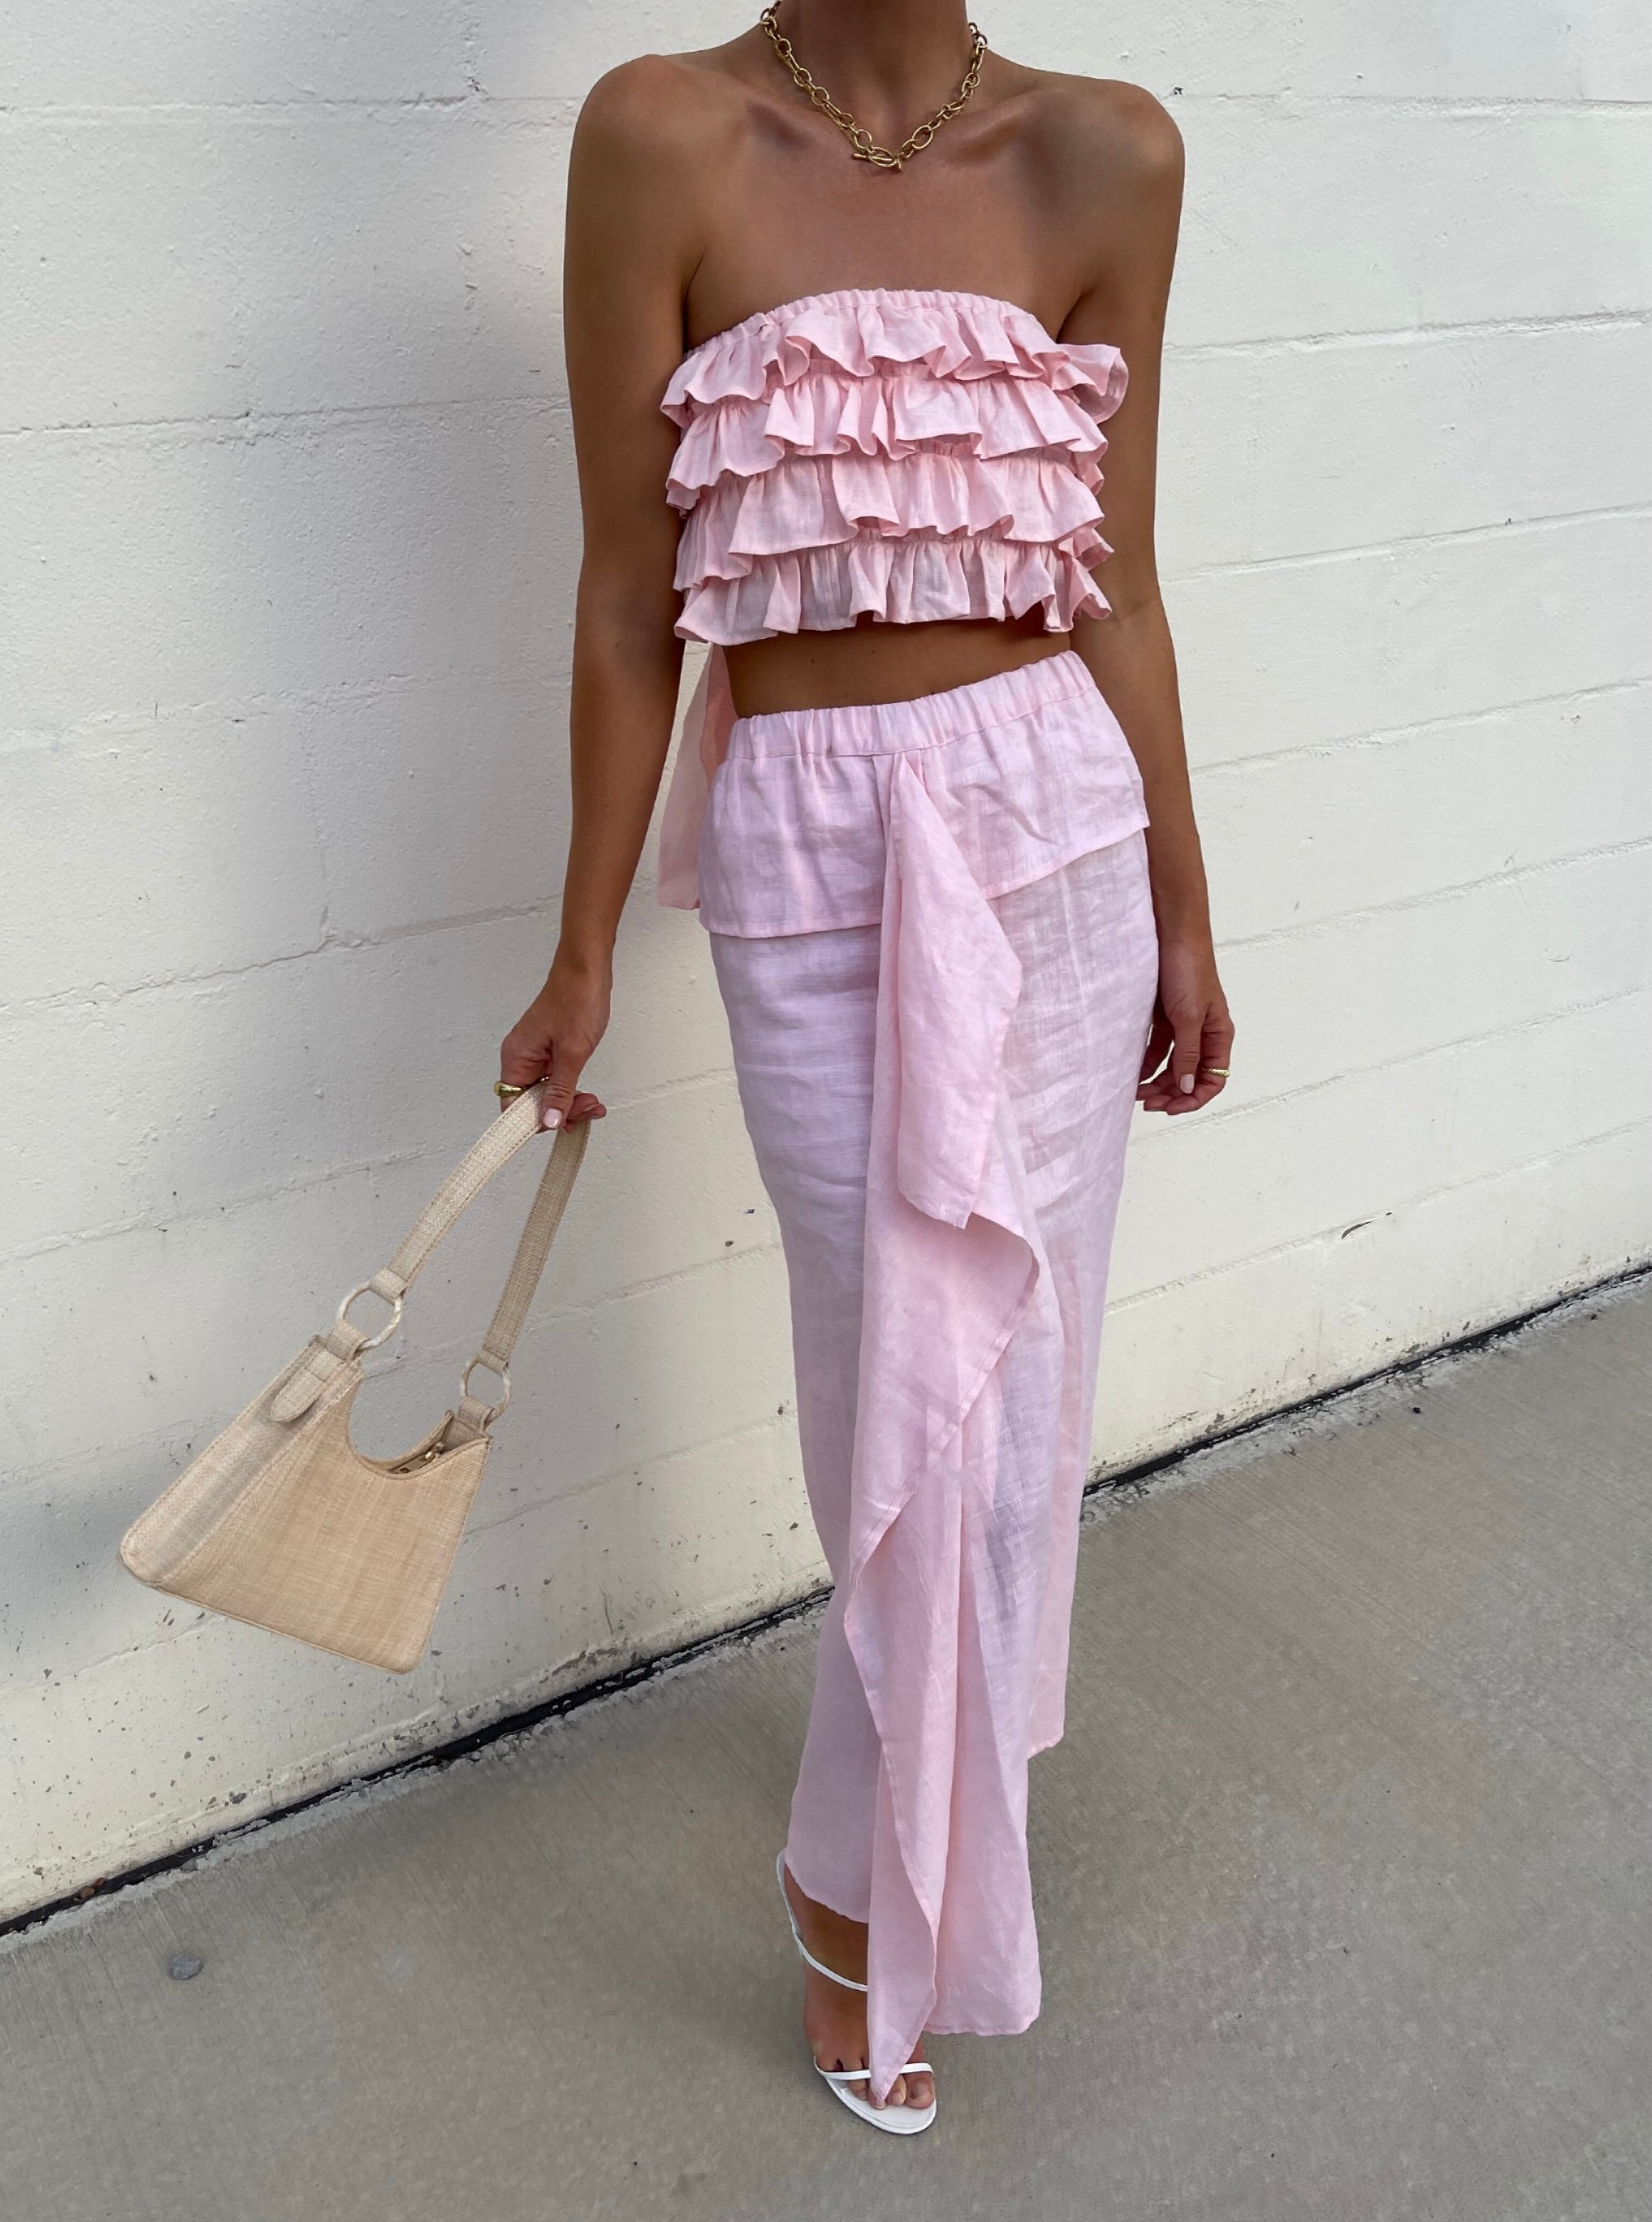 ÉSS THE LABEL Charli Ruffle Cotton Top - Blush